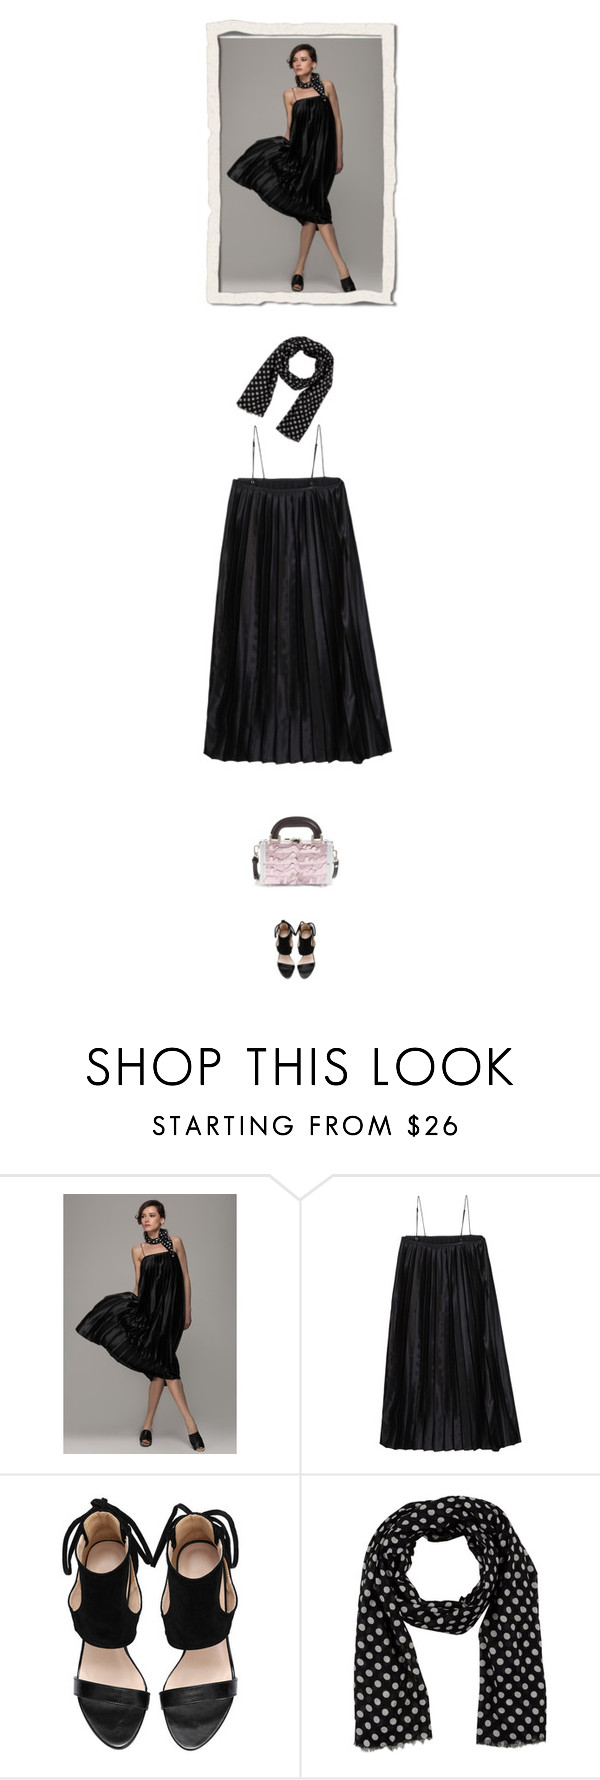 """pleated dress"" by bodangela ❤ liked on Polyvore featuring ONLY, Julien David, women's clothing, women, female, woman, misses and juniors"